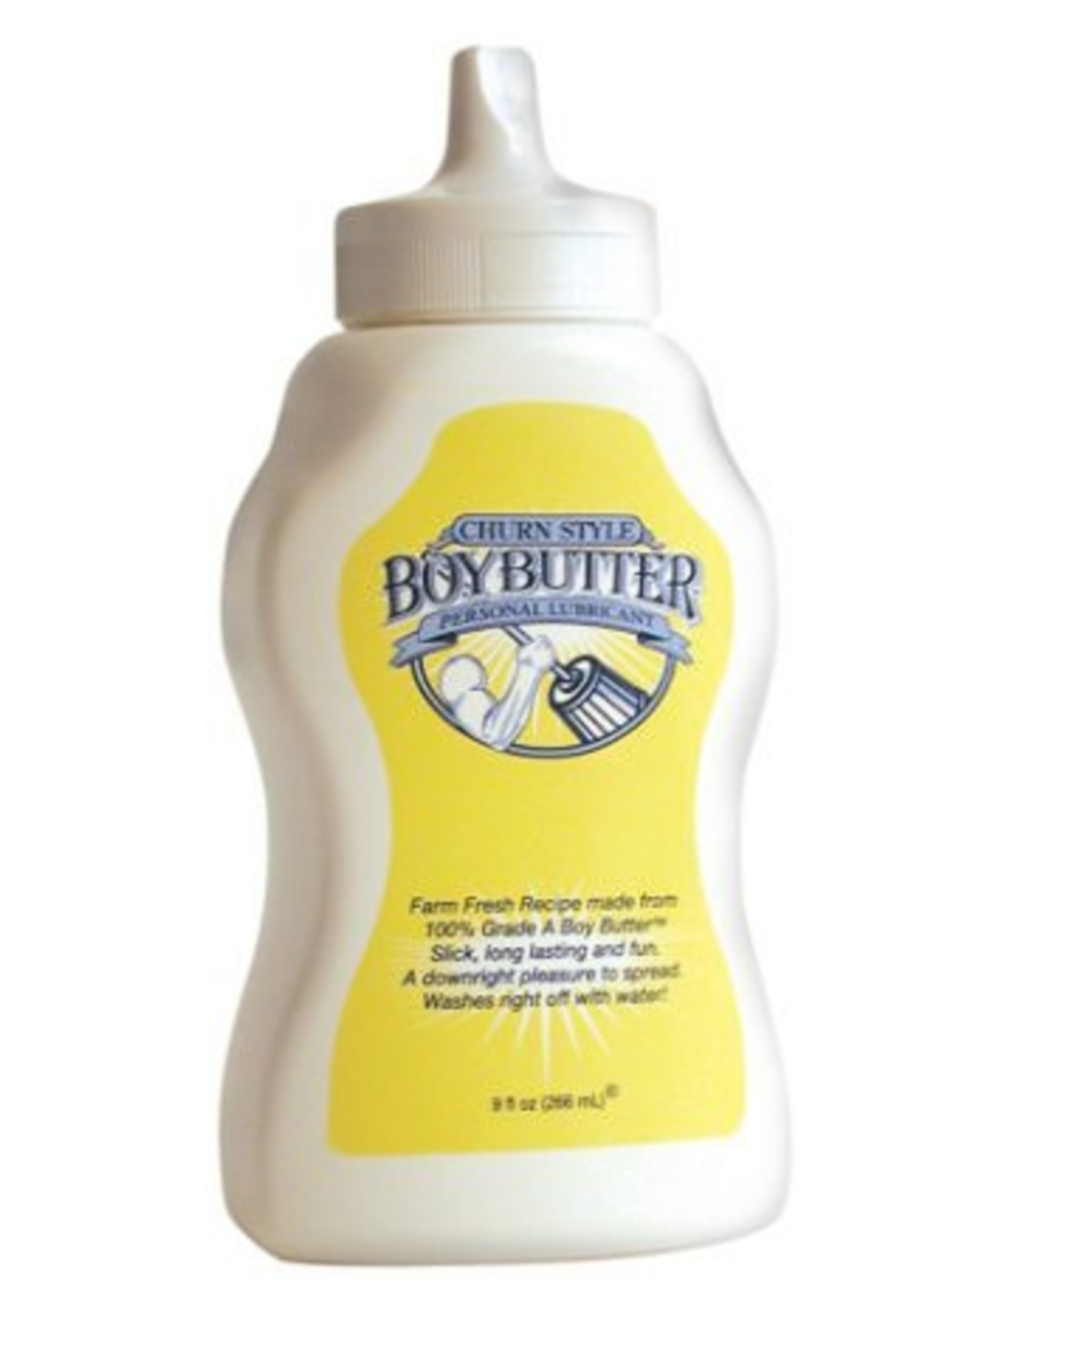 Boy Butter Oil Based Lubricant with Coconut Oil 9 oz Squirt